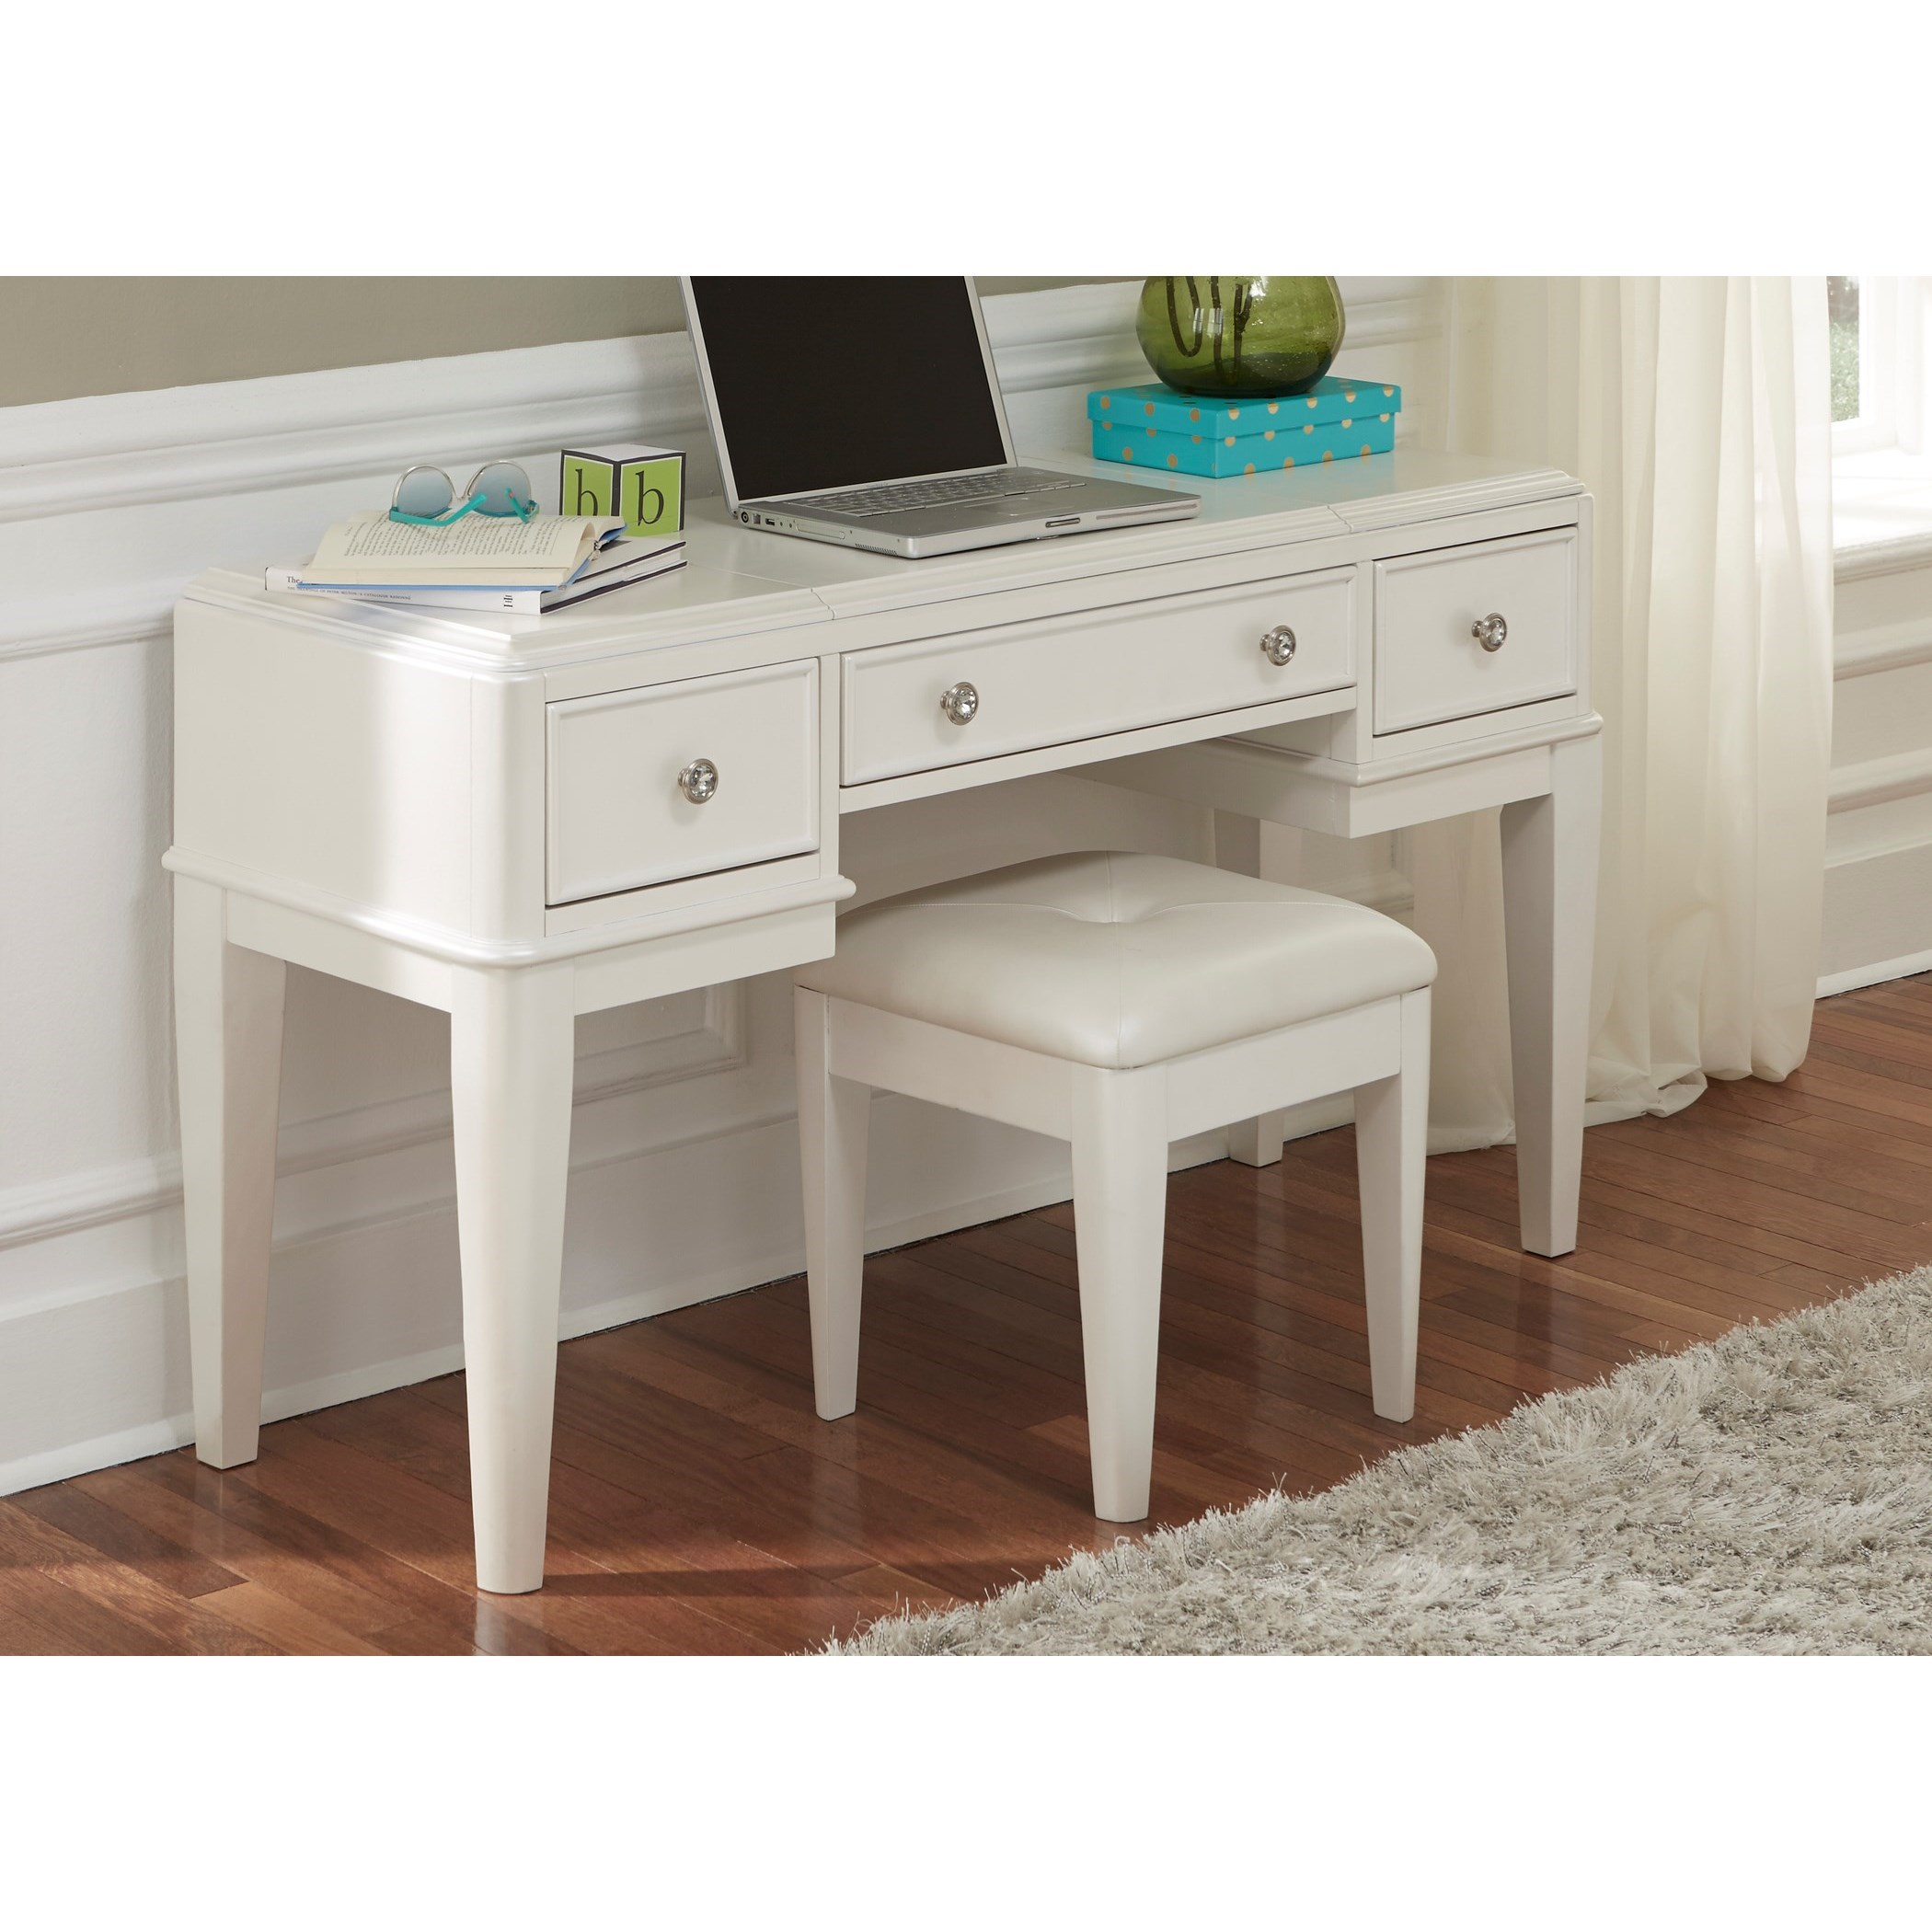 Liberty furniture stardust contemporary glam youth vanity for Wayside furniture